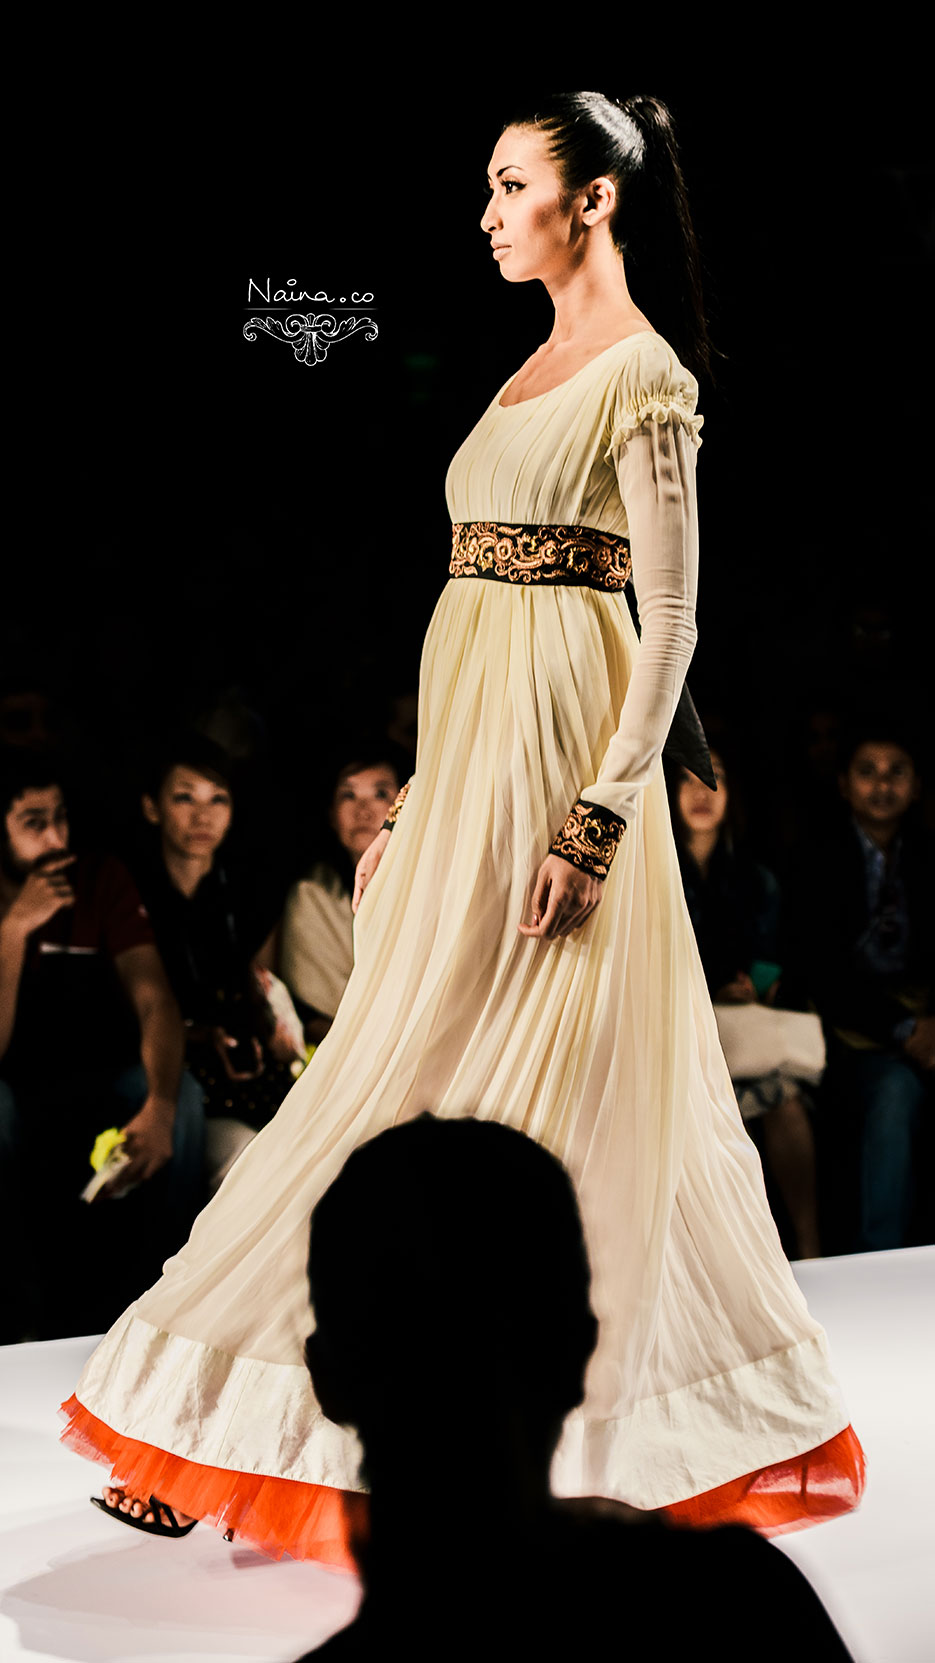 Wills Lifestyle India Fashion Week, Spring Summer 2013. Joy Mitra by photographer Naina Redhu of Naina.co